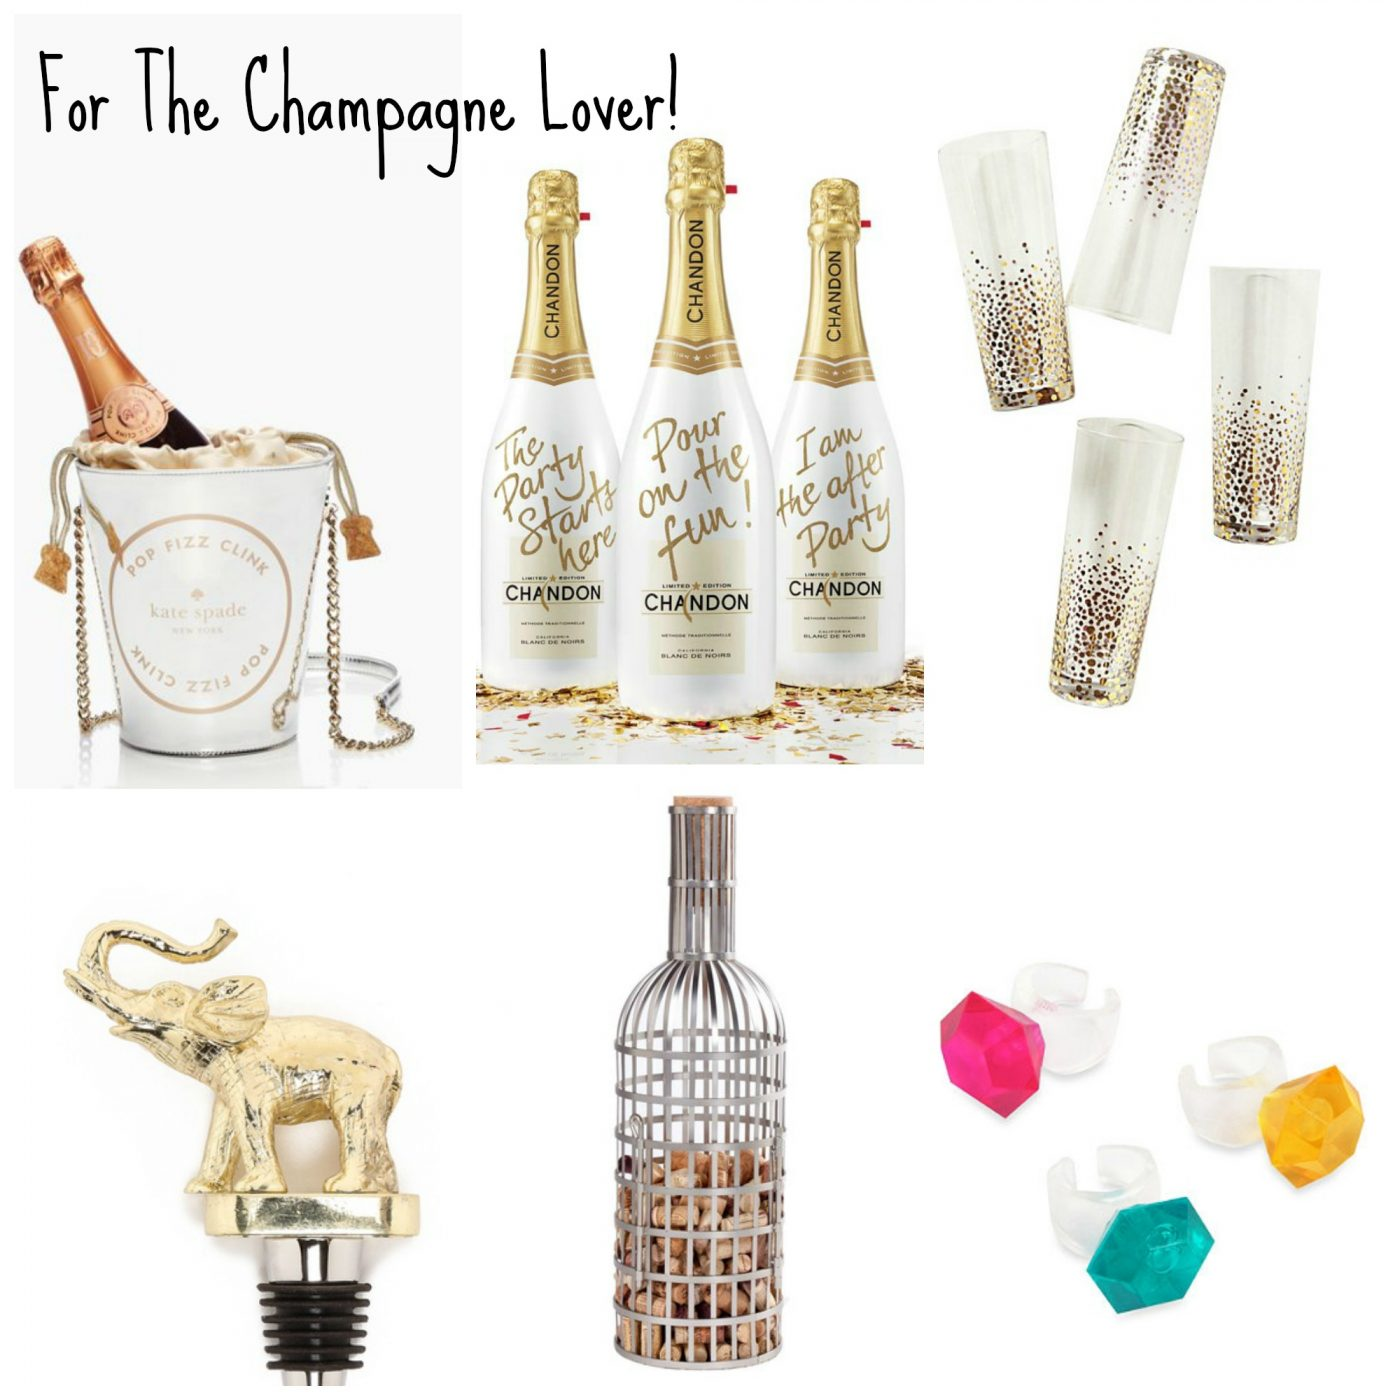 champagne themed gifts - Christmas Gifts For Girlfriend 2014